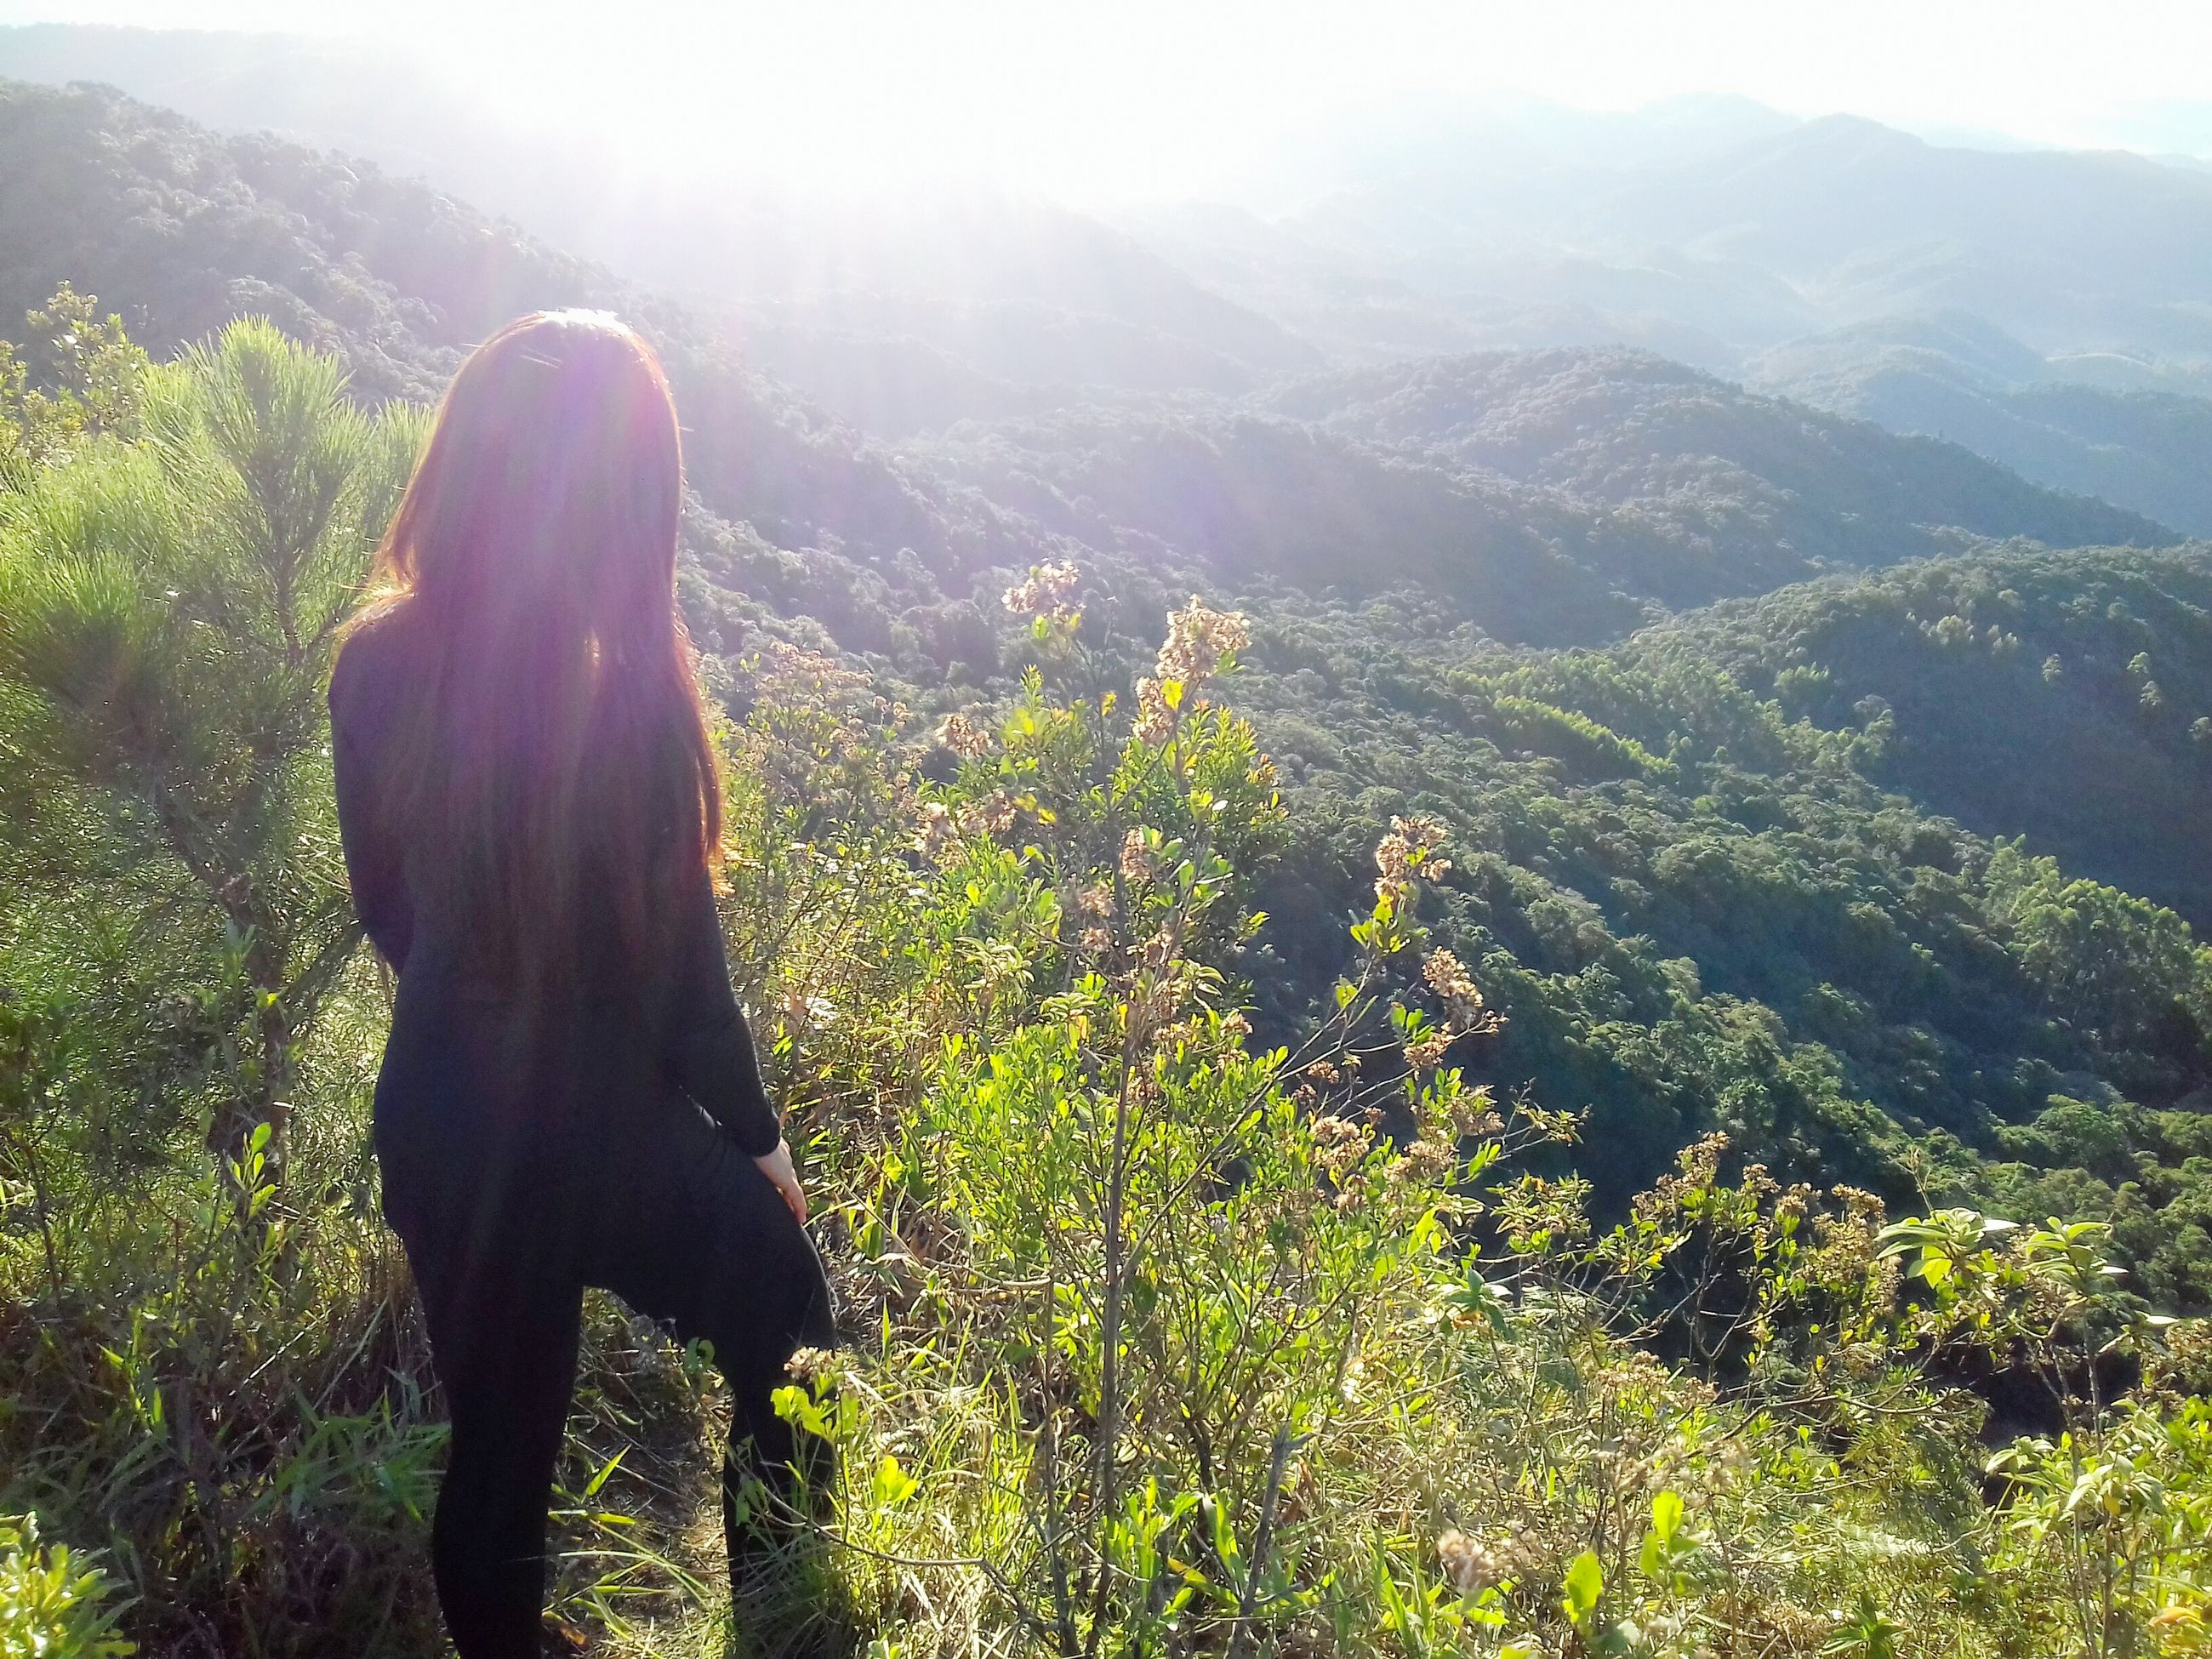 one person, nature, real people, long hair, rear view, mountain, plant, women, tranquility, standing, day, sunlight, outdoors, leisure activity, full length, landscape, growth, young adult, tree, beauty in nature, young women, lifestyles, adult, people